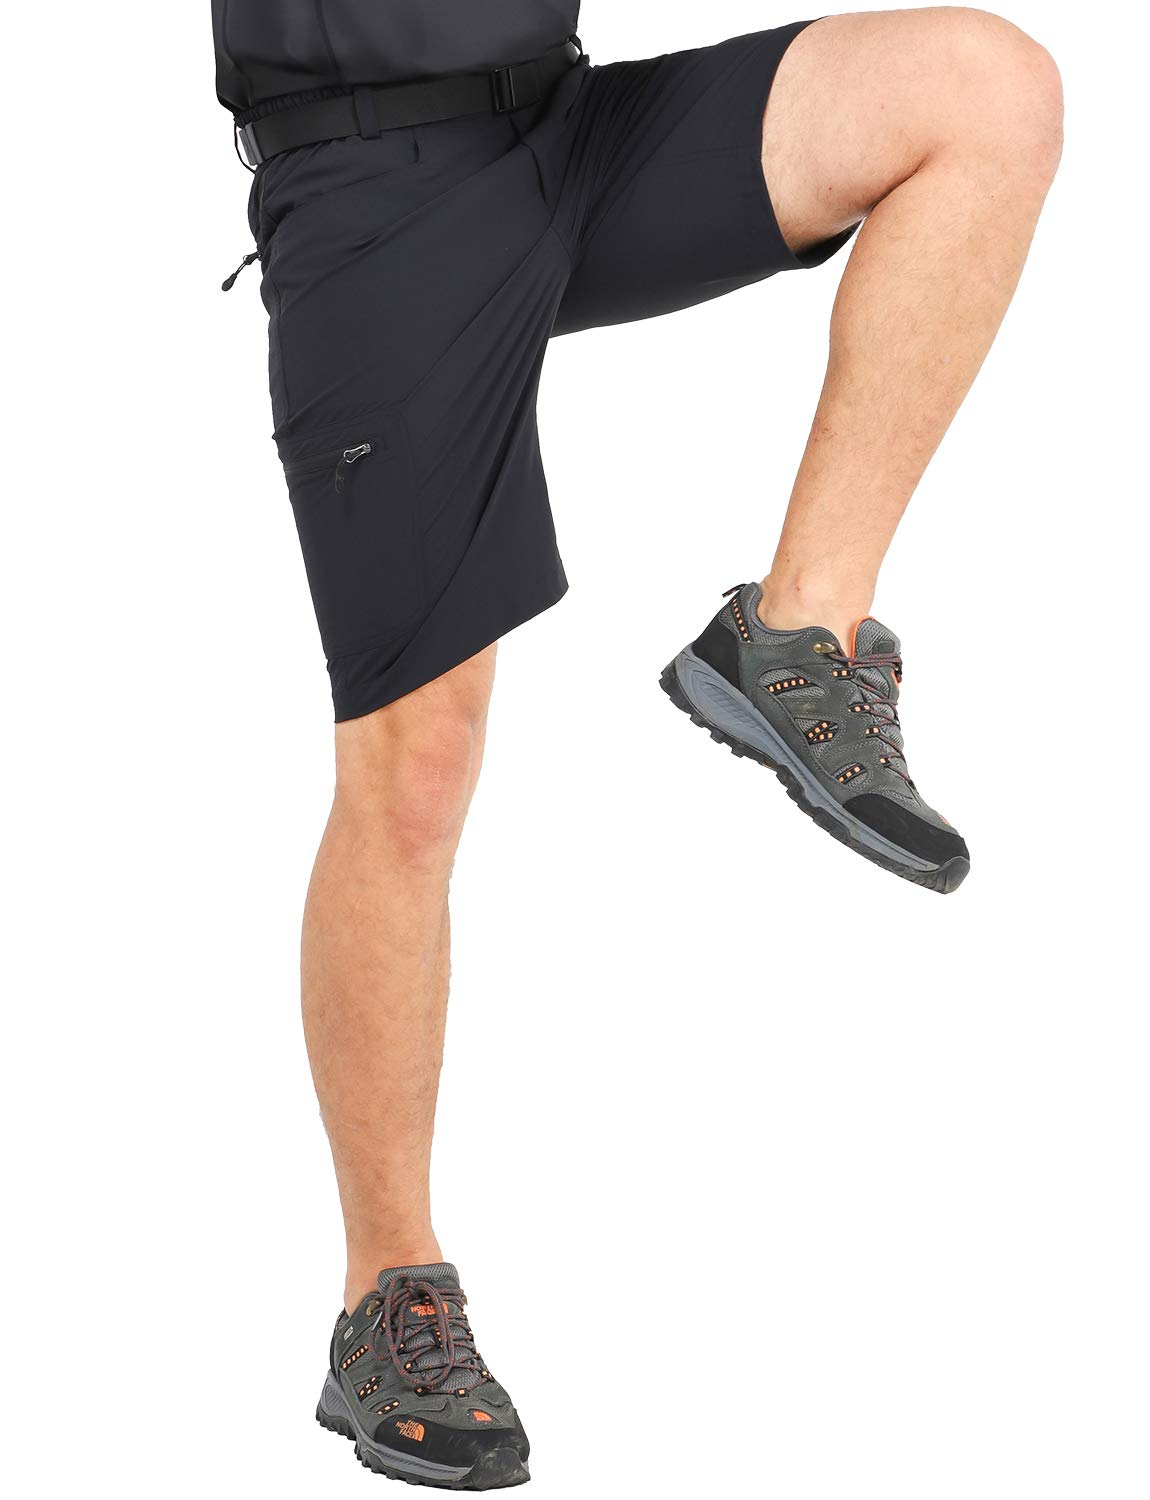 MIER Men's Quick Dry Hiking Shorts Lightweight Cargo Shorts with 6 Pockets, Stretchy, Water Resistant